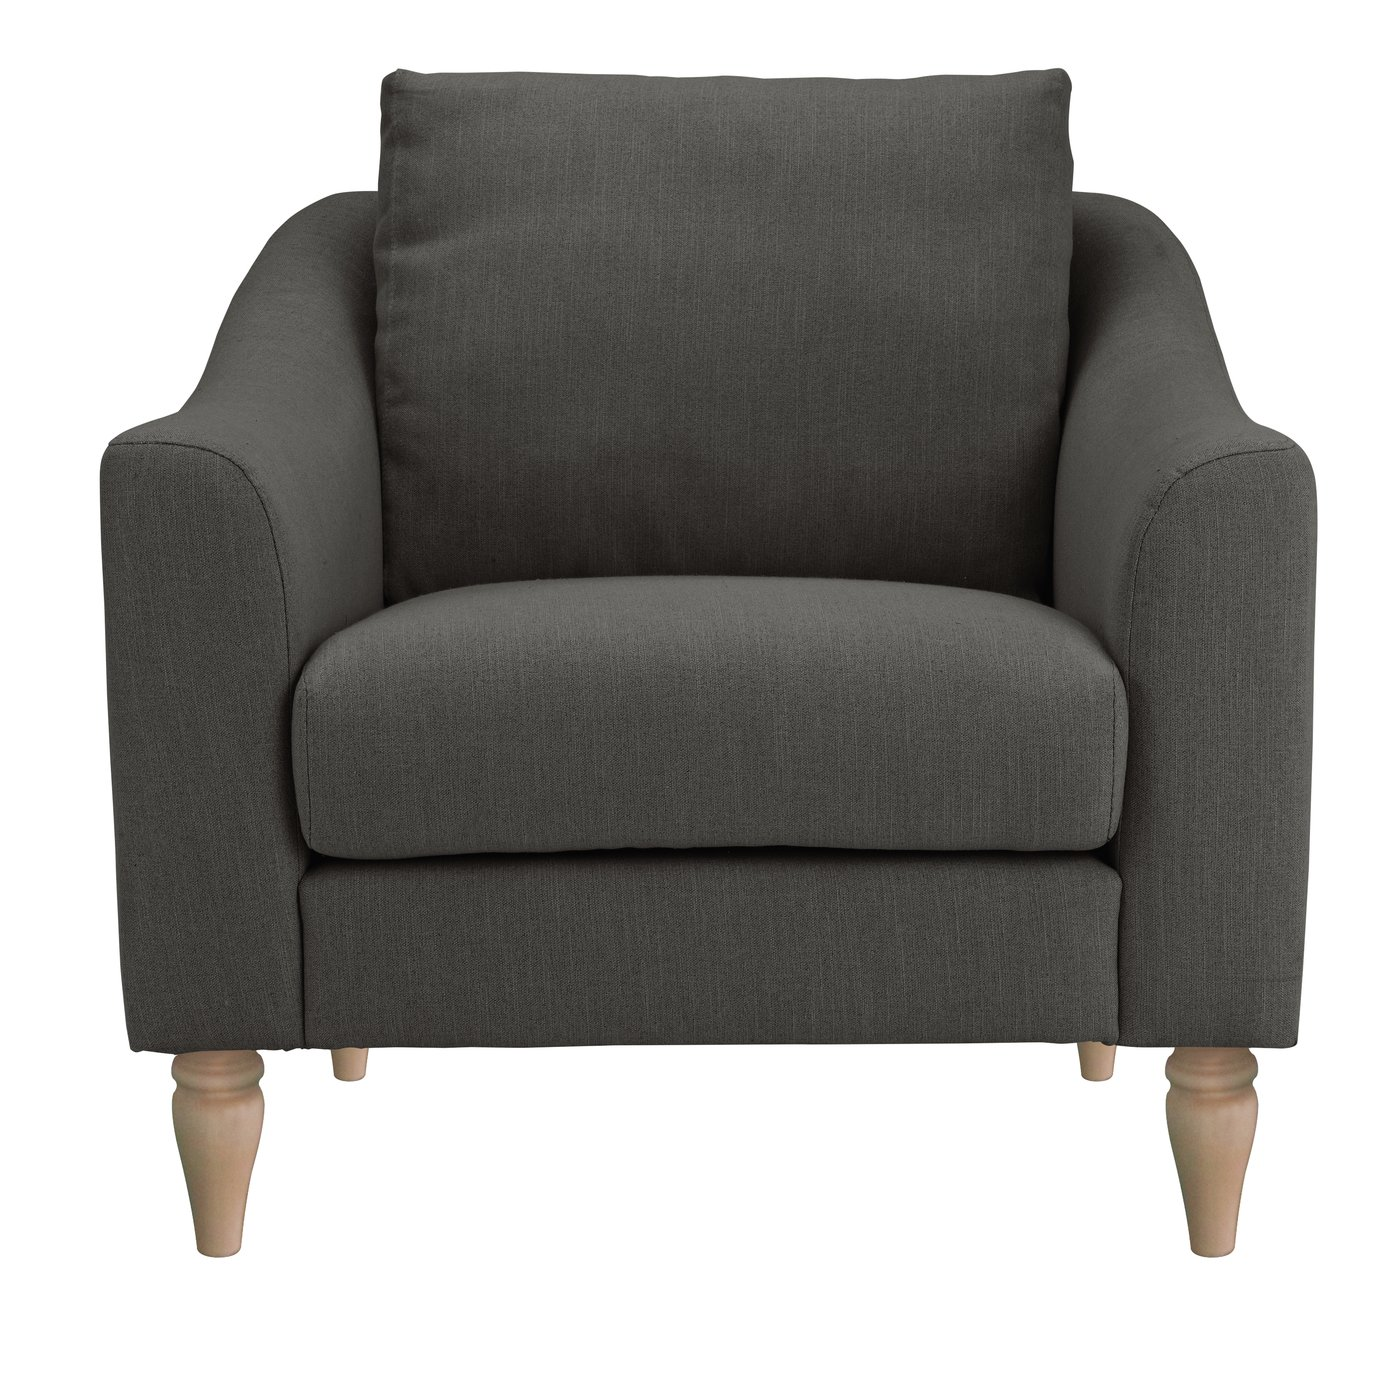 Argos Home Cameron Fabric Cuddle Chair - Charcoal